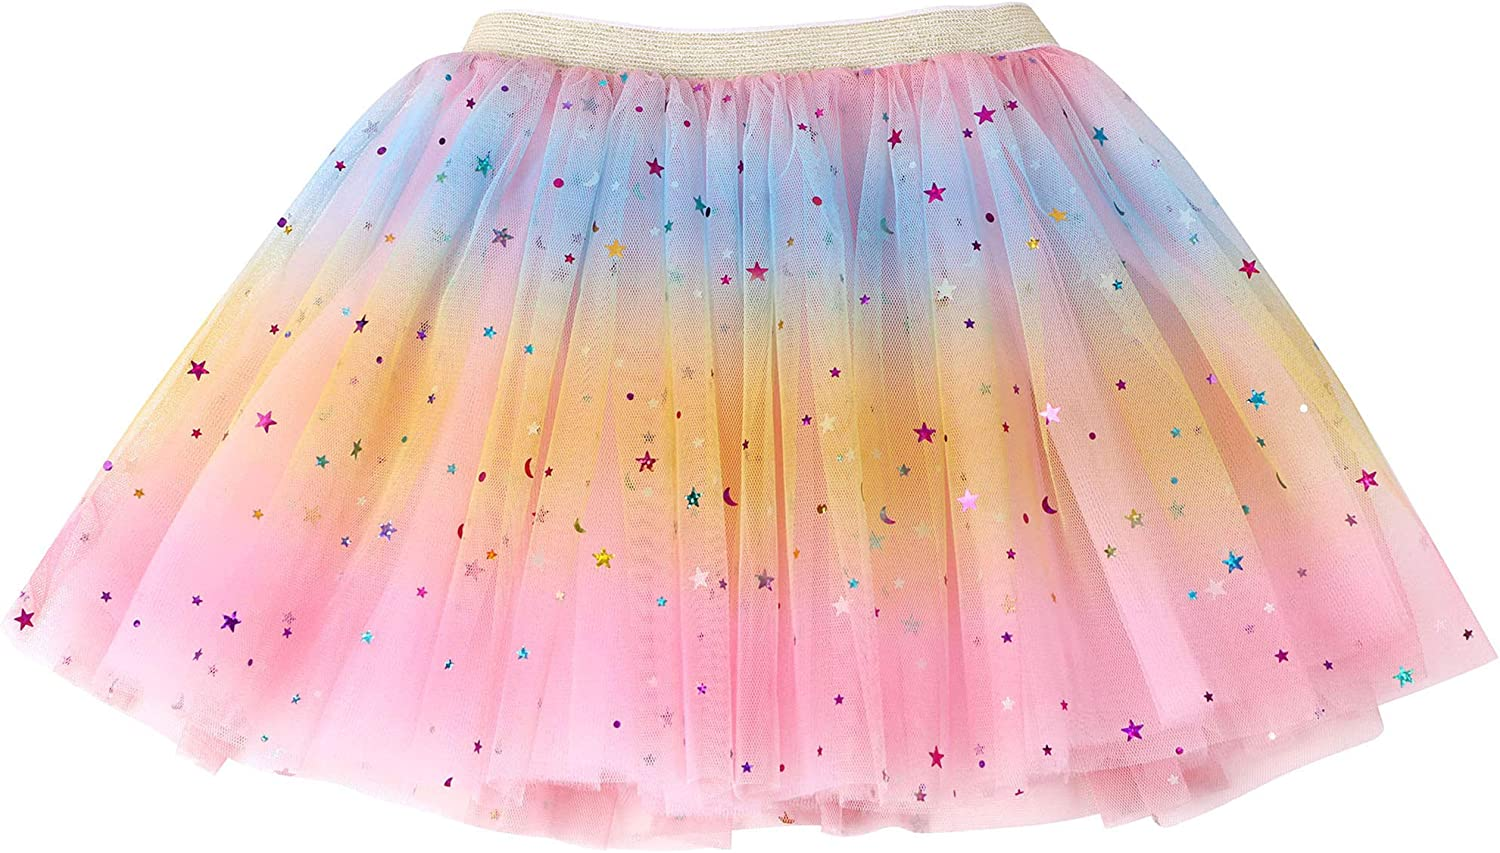 WEUIE Layered Ballet Tulle Rainbow Tutu Skirt for Little Girls Dress Preschooler Stars Sequins Party Princess Skirts